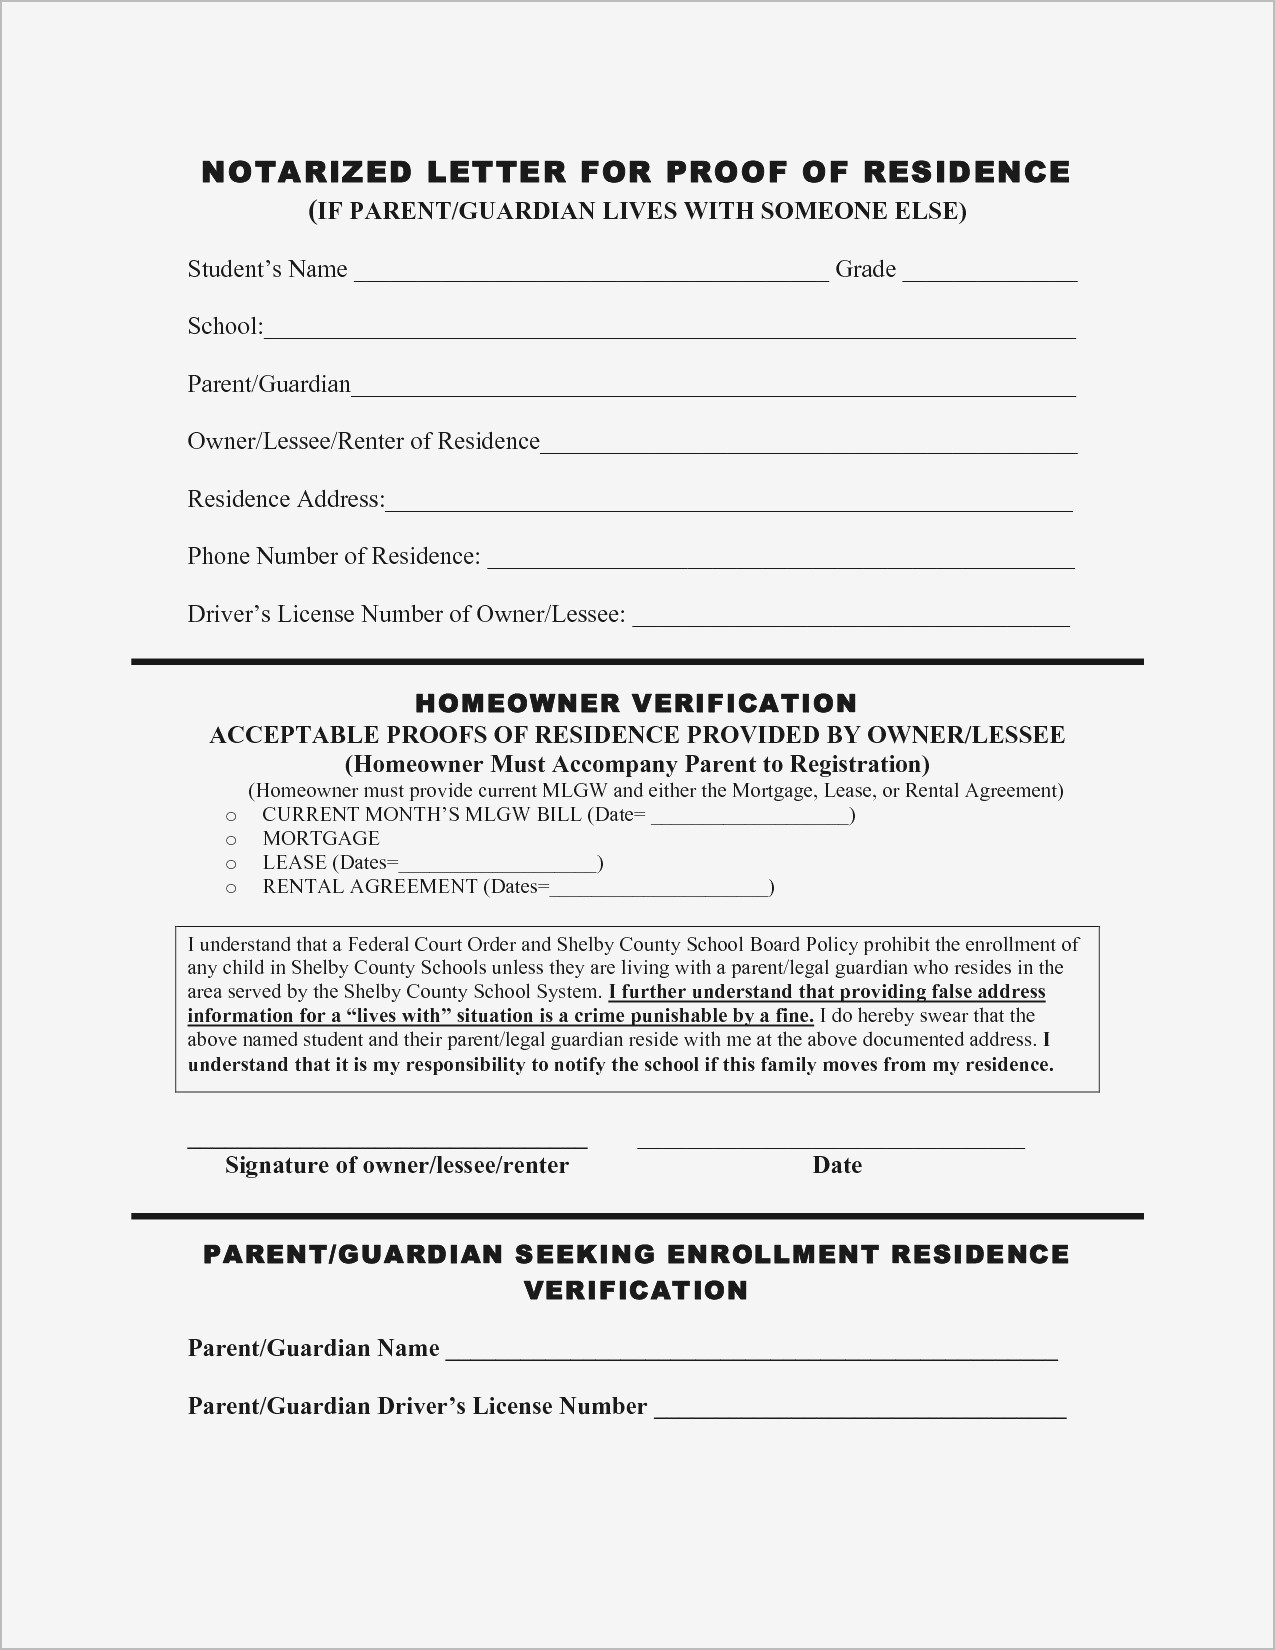 Proof Of Residency Letter Template - Printable Notarized Letter Residency Template Samples